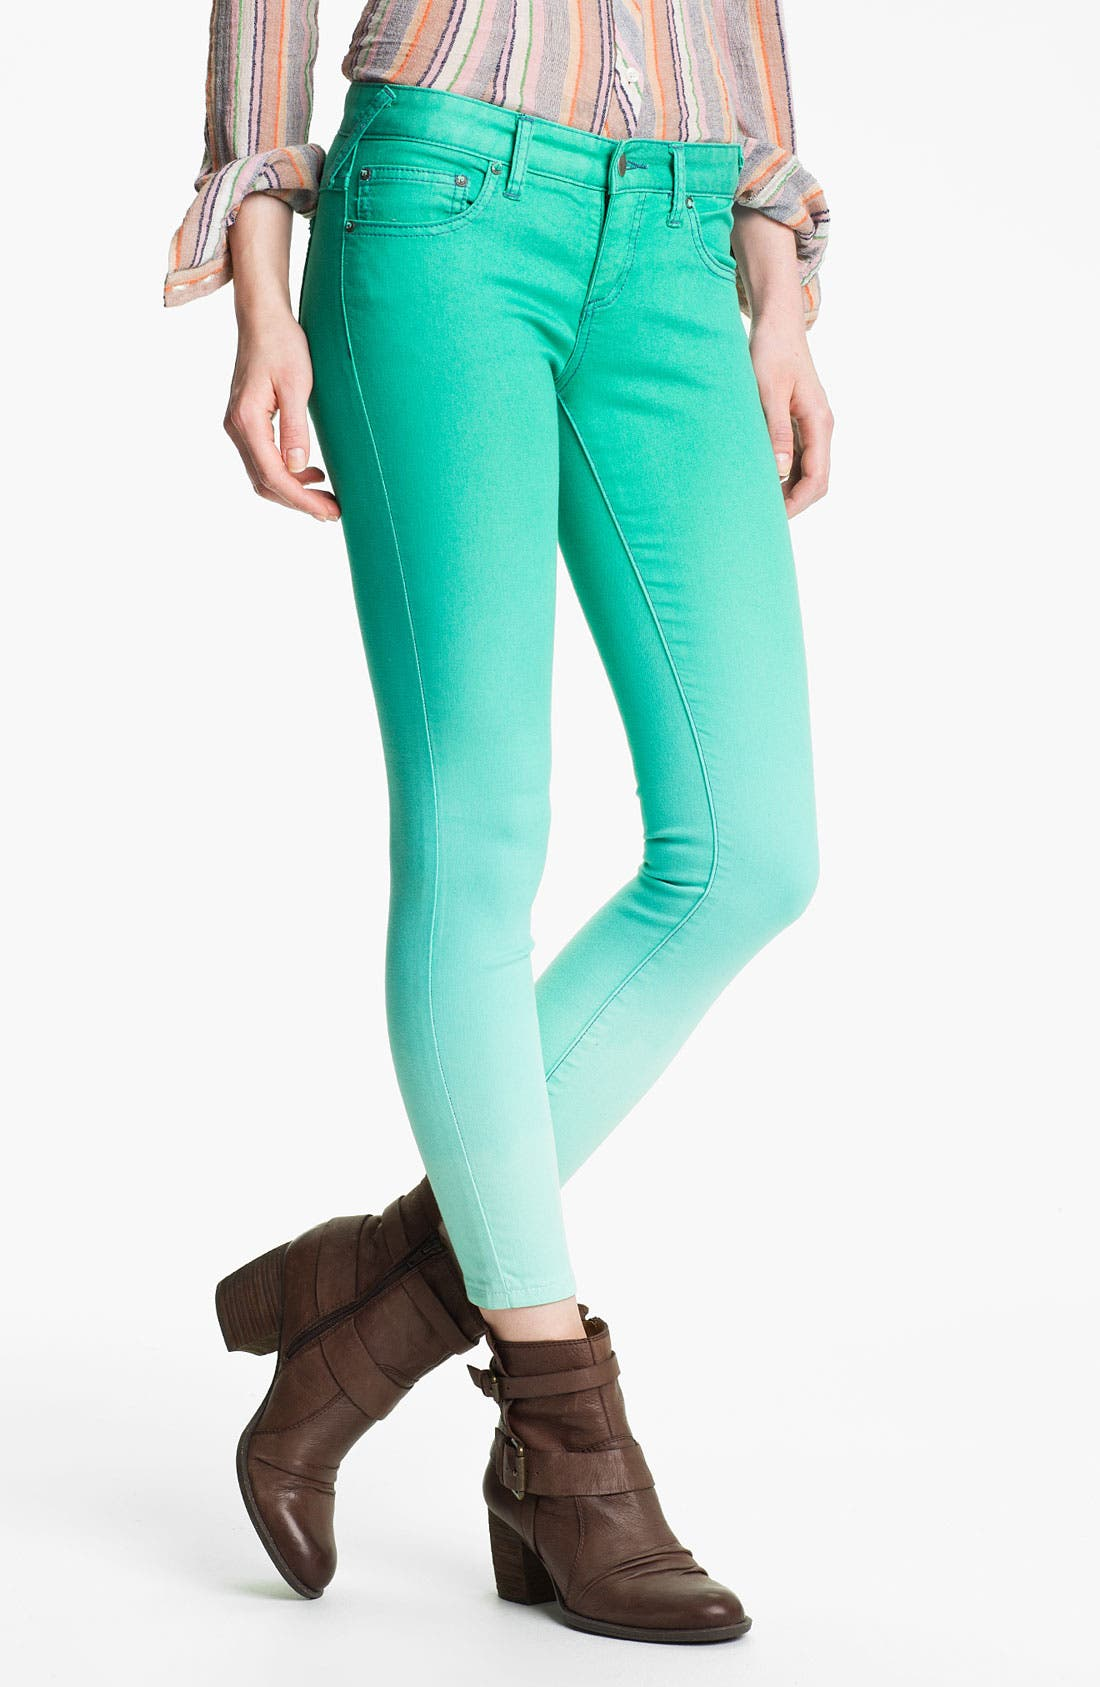 Alternate Image 1 Selected - Free People Ombré Skinny Jeans (Graphite)